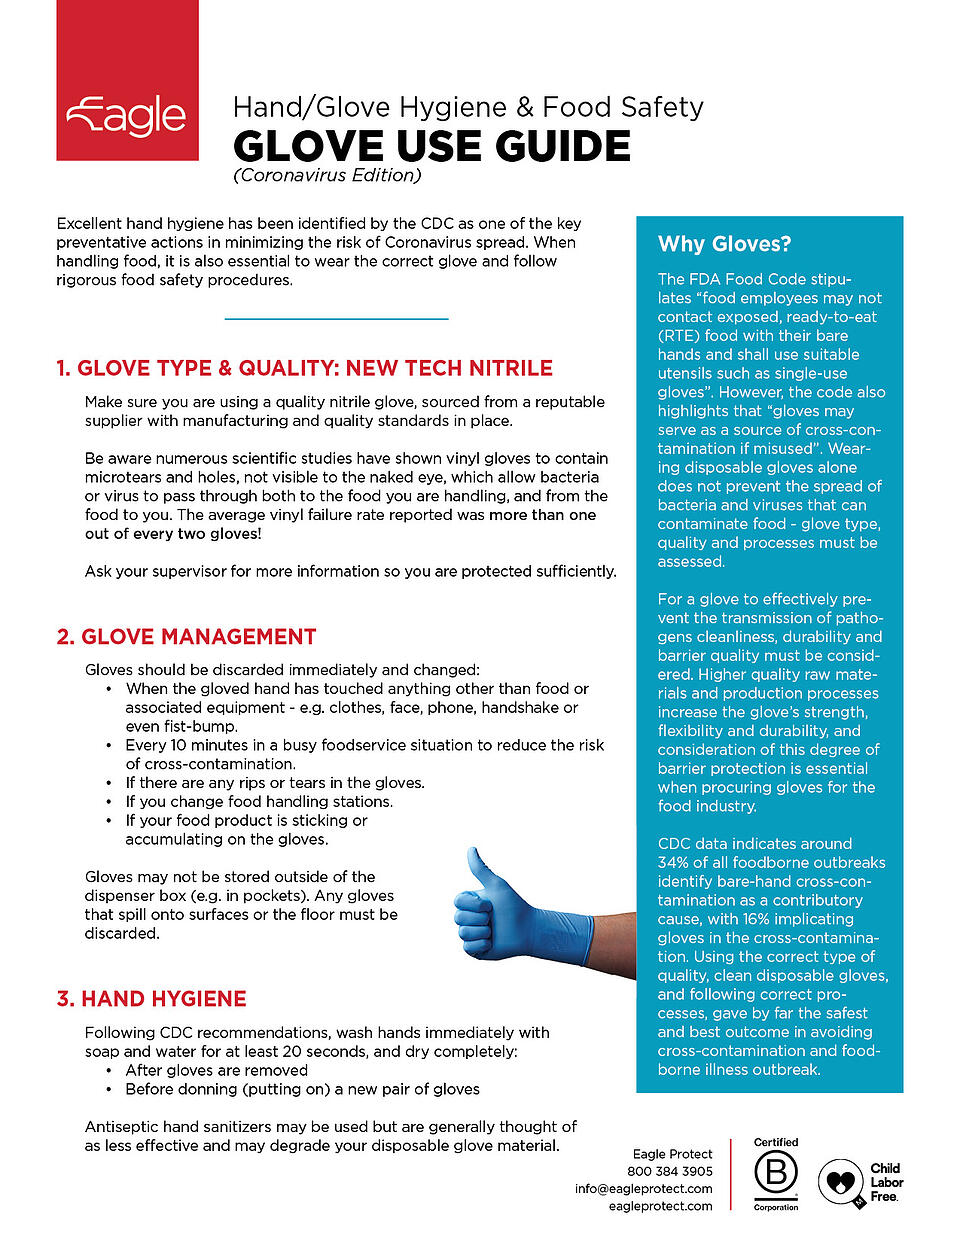 Glove Use Guide - Coronavirus Edition